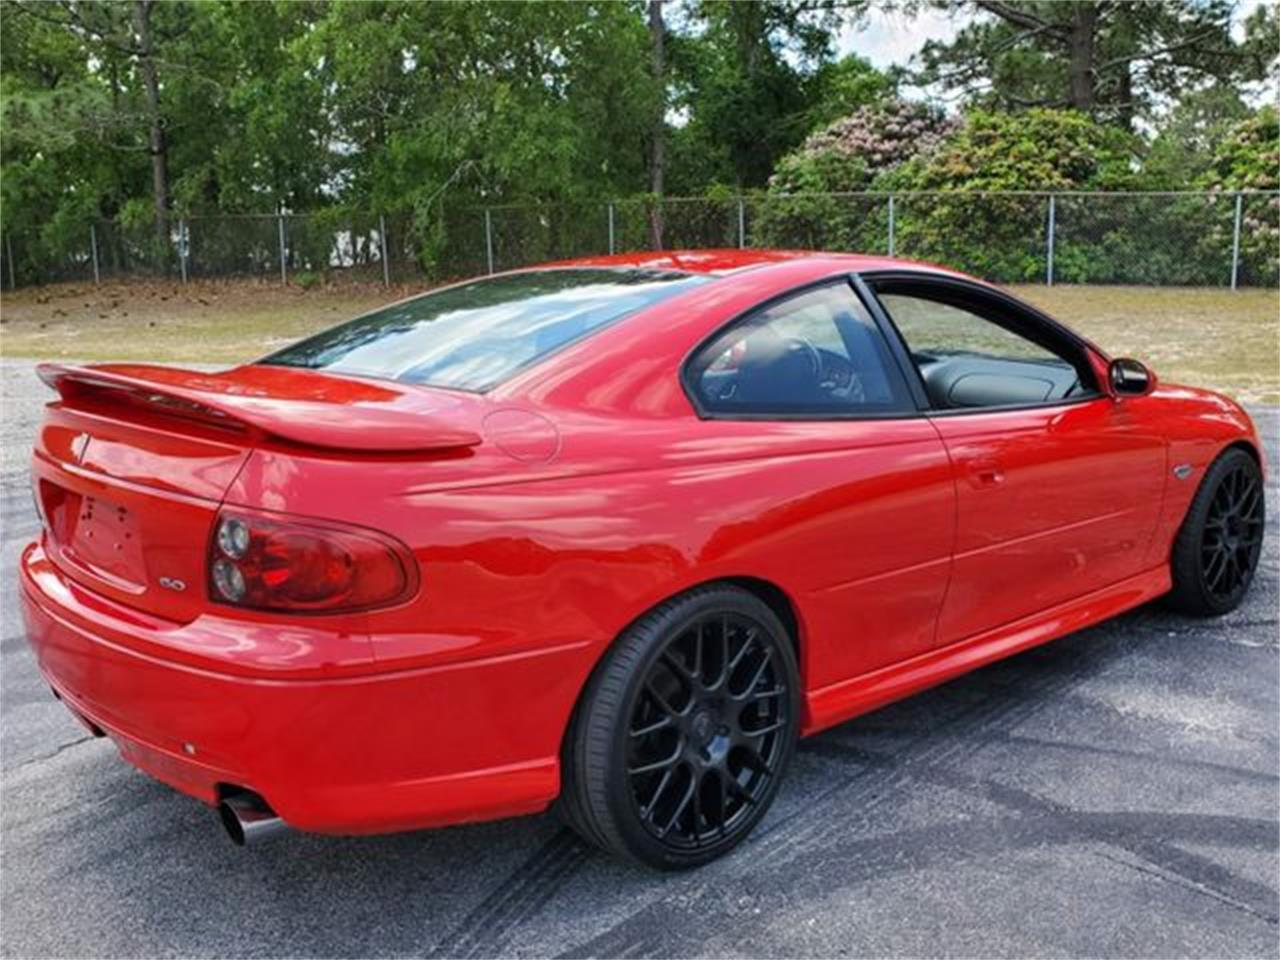 Large Picture of 2005 GTO located in Hope Mills North Carolina - $18,995.00 - Q2RG